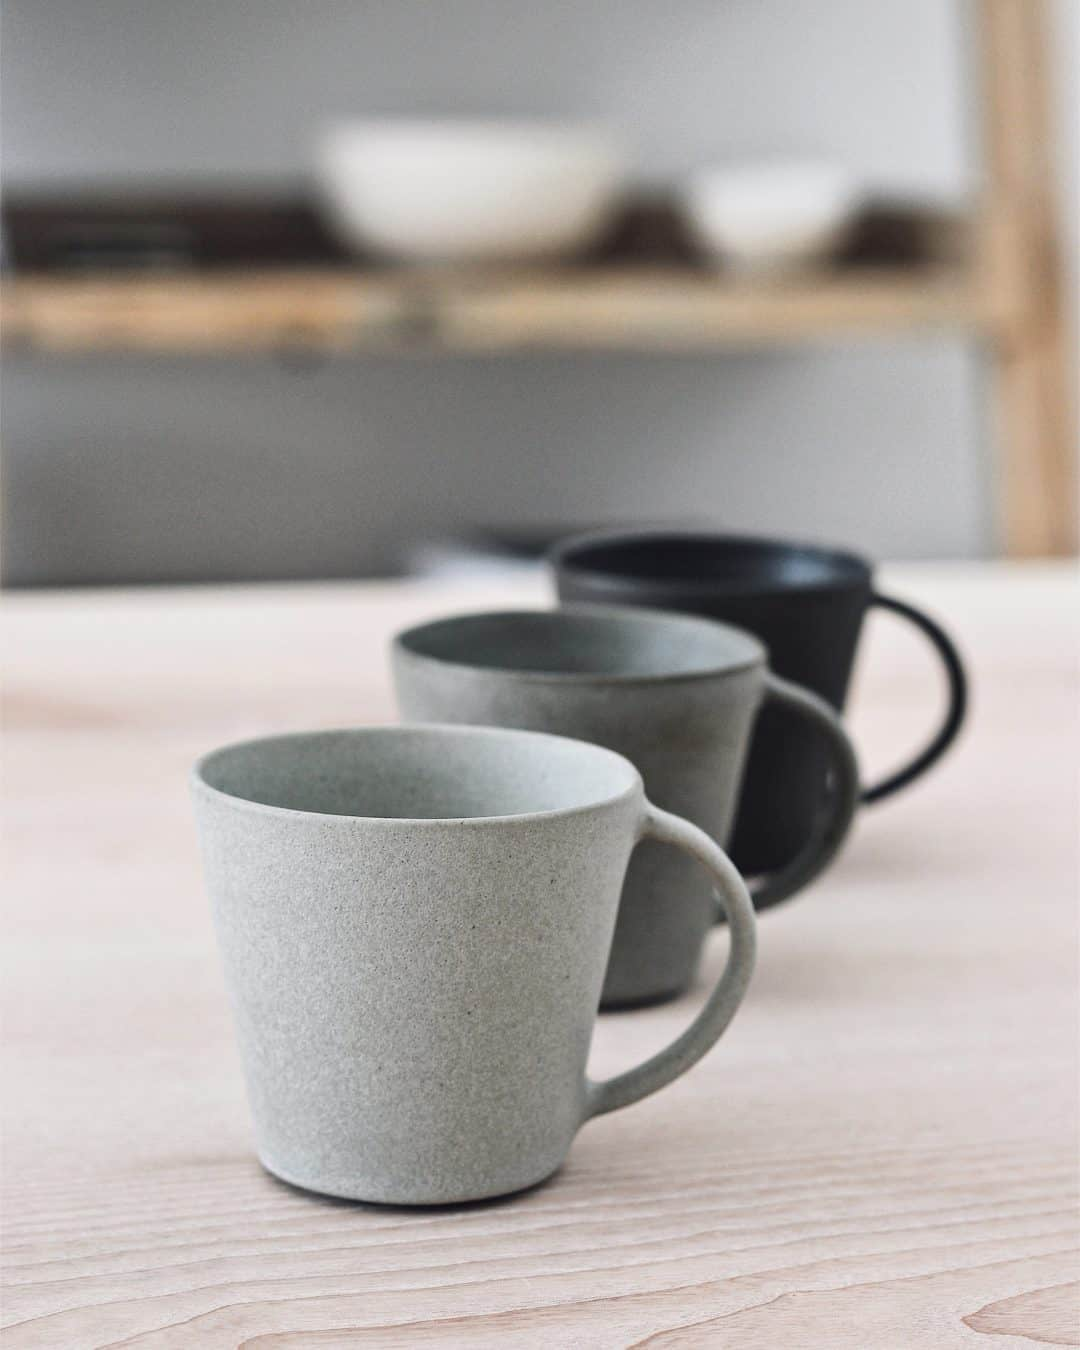 Minimalist handmade ceramic mugs in black and grey by Jono Smart. One of Sara Tasker's favourite gift ideas this year. Click through to discover Sara's other favourites - you'll love them!